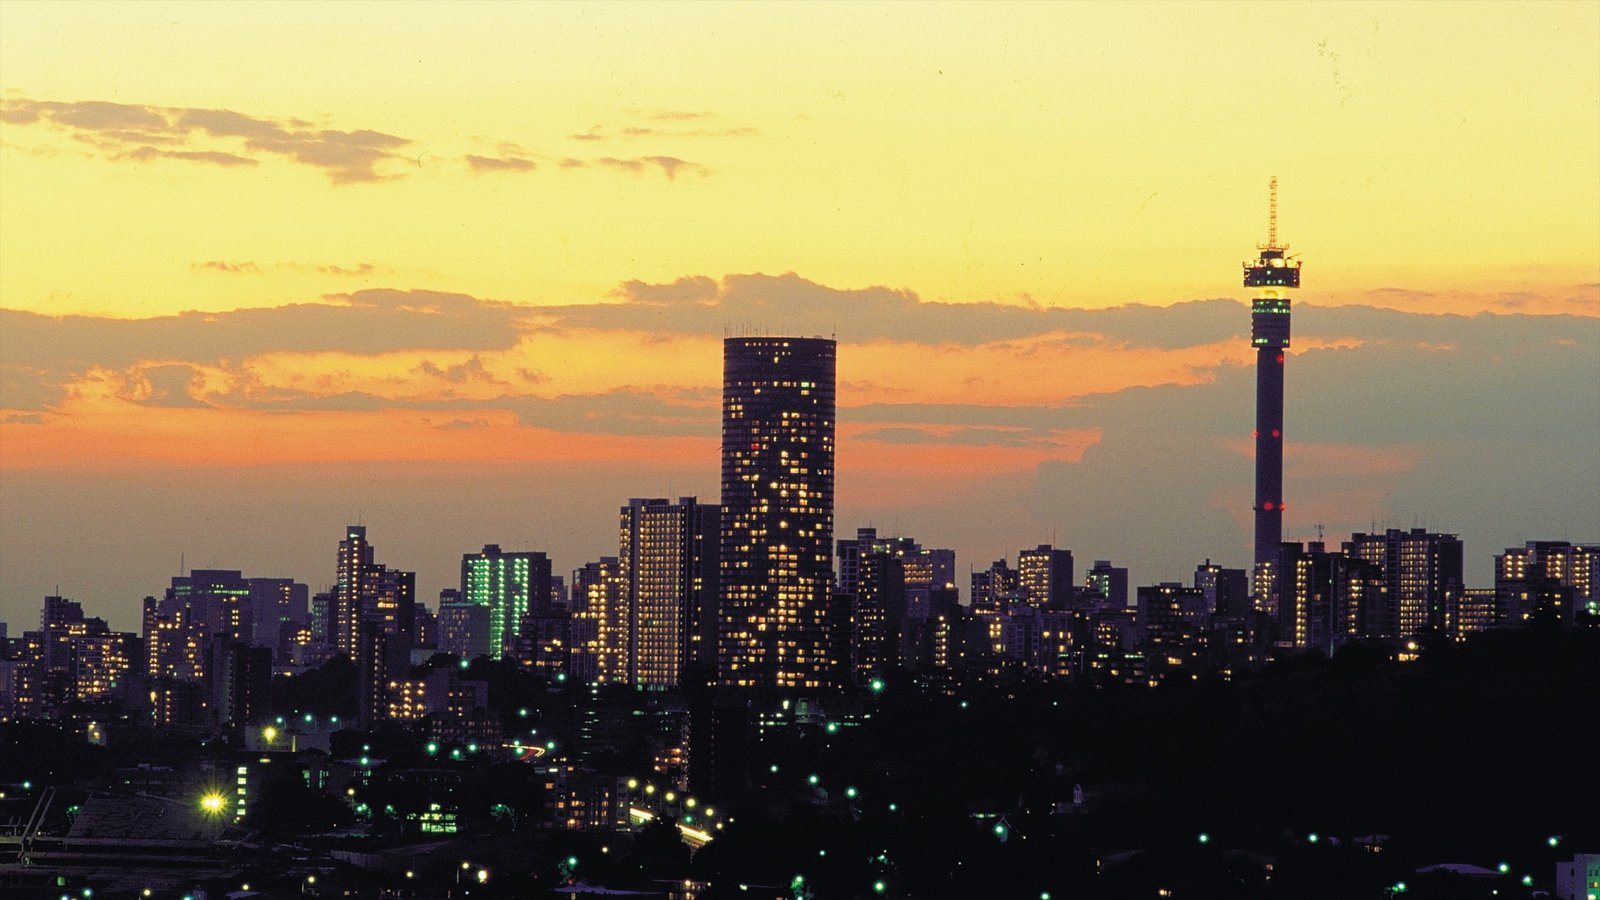 Sunset sunrise pictures view images of johannesburg gauteng johannesburg gauteng showing a city skyline and a high rise building altavistaventures Images